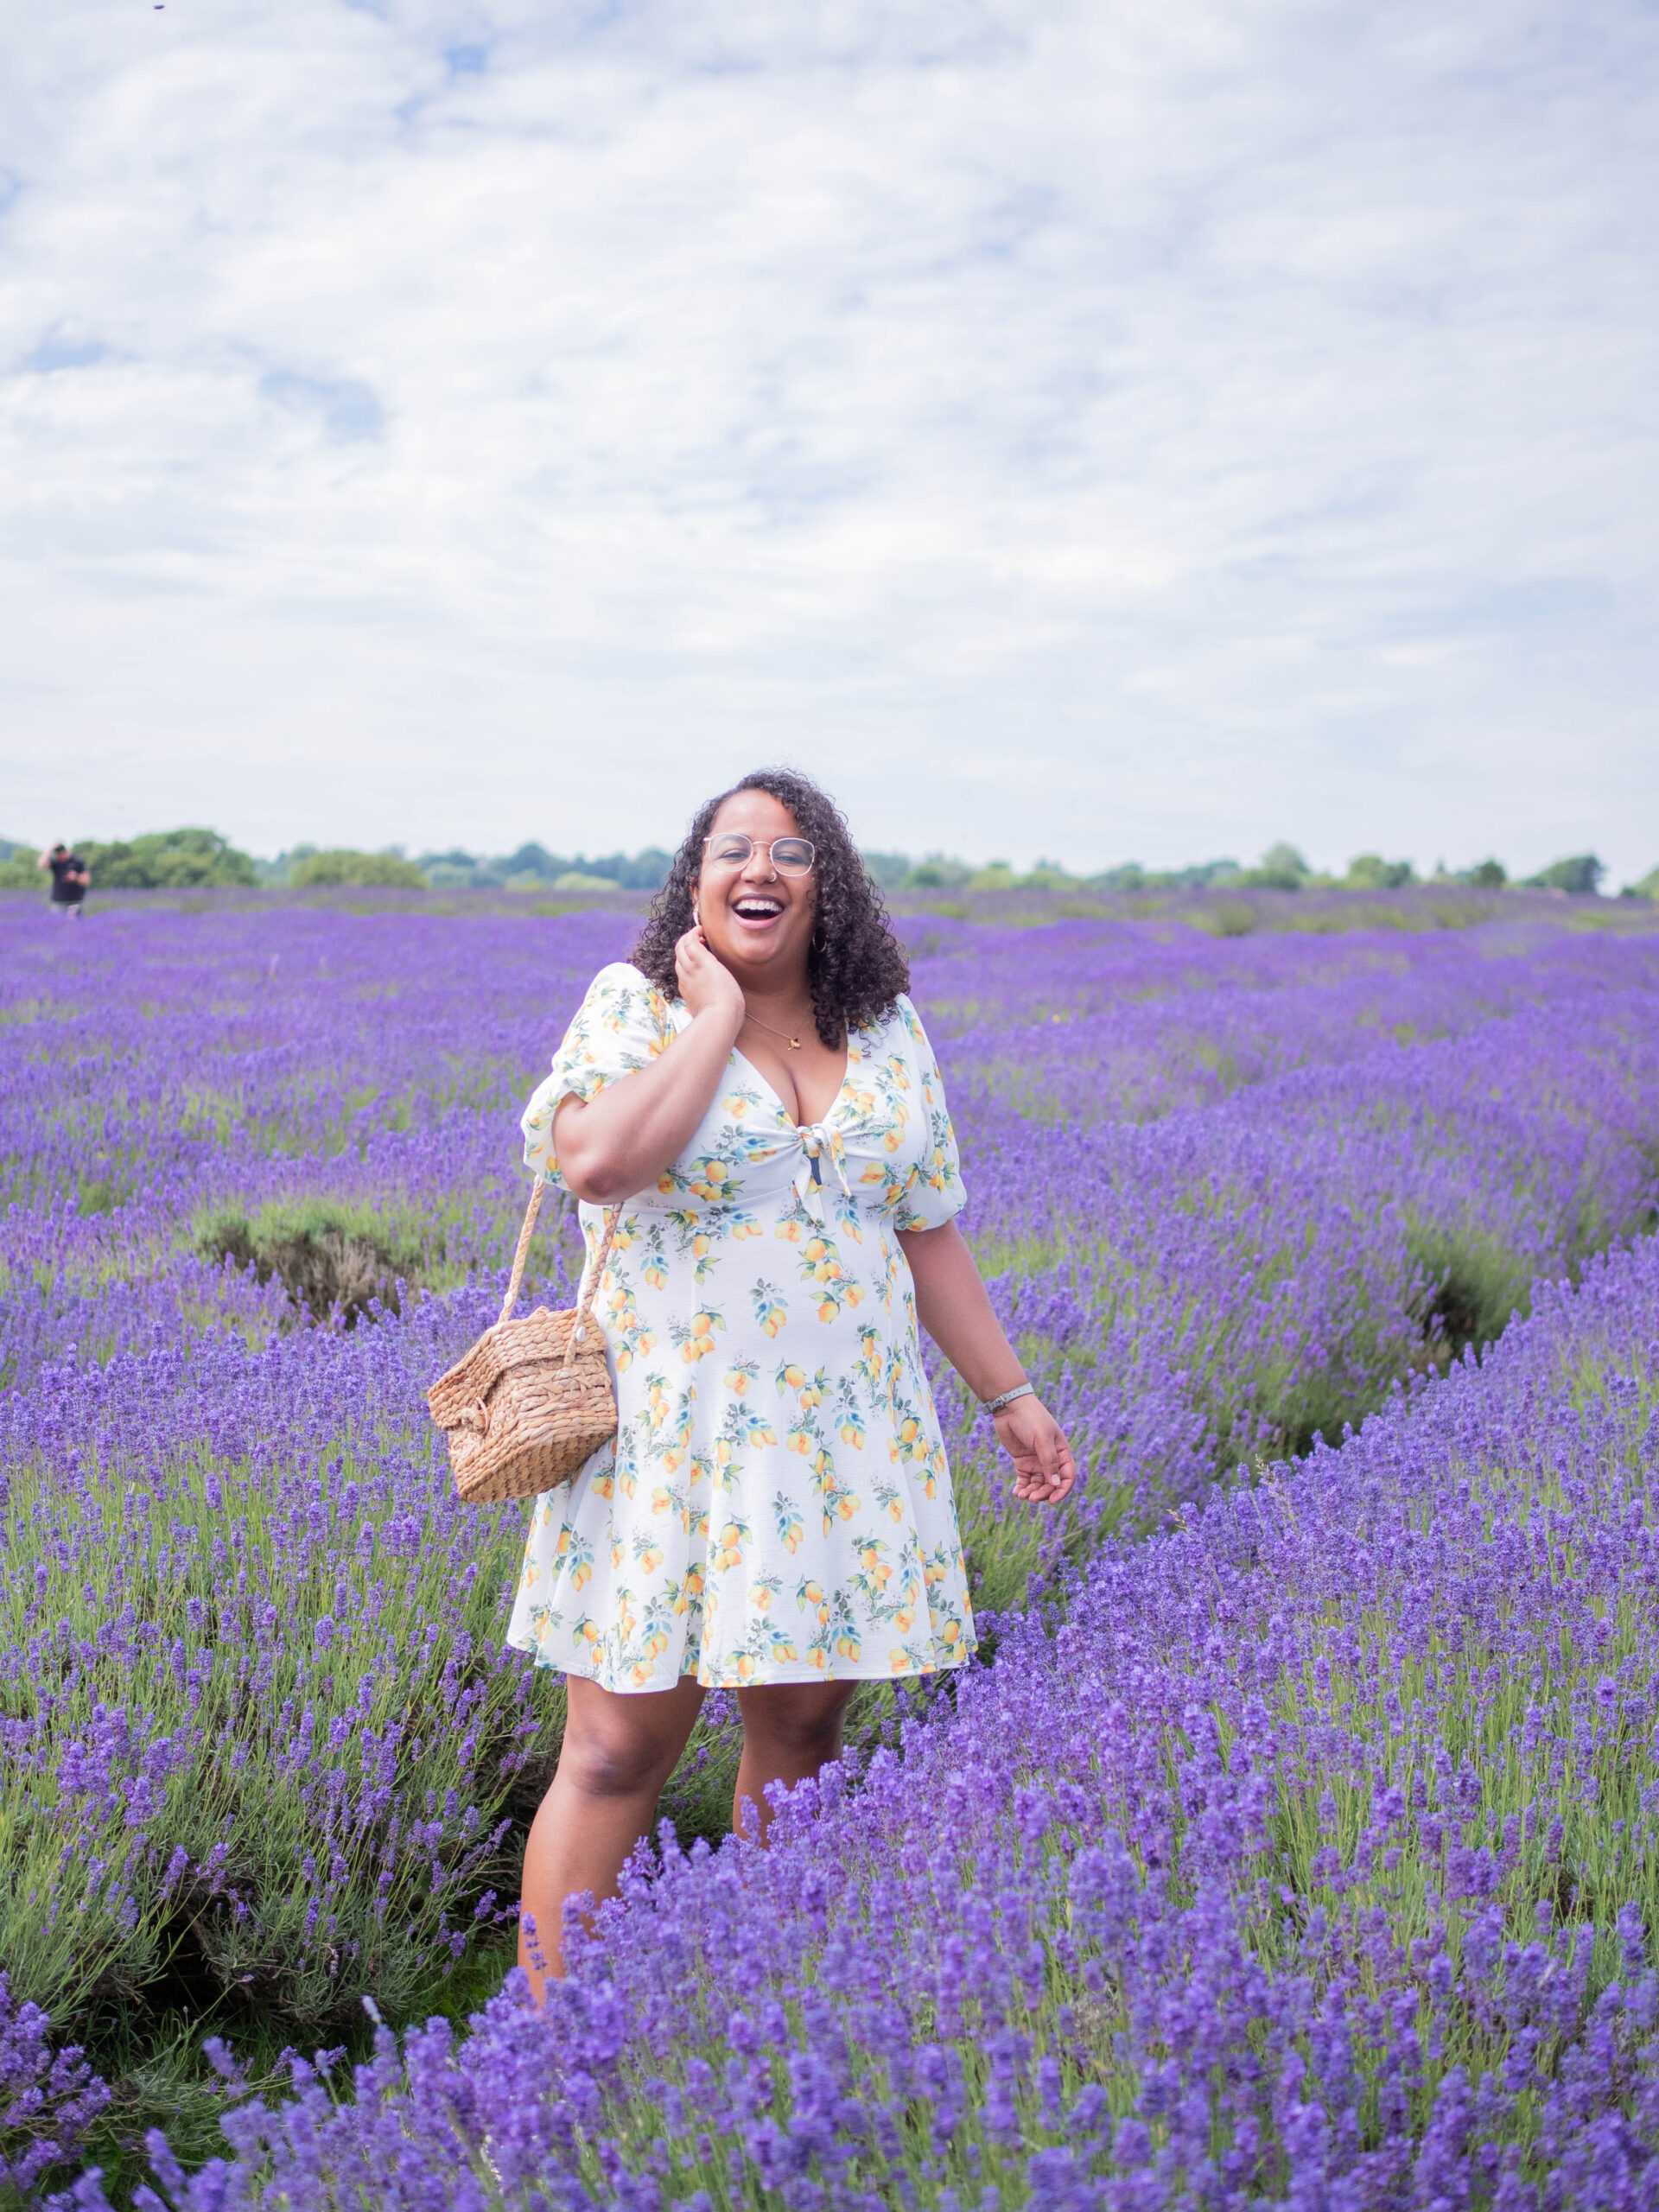 A Trip to Mayfield Lavender Farm